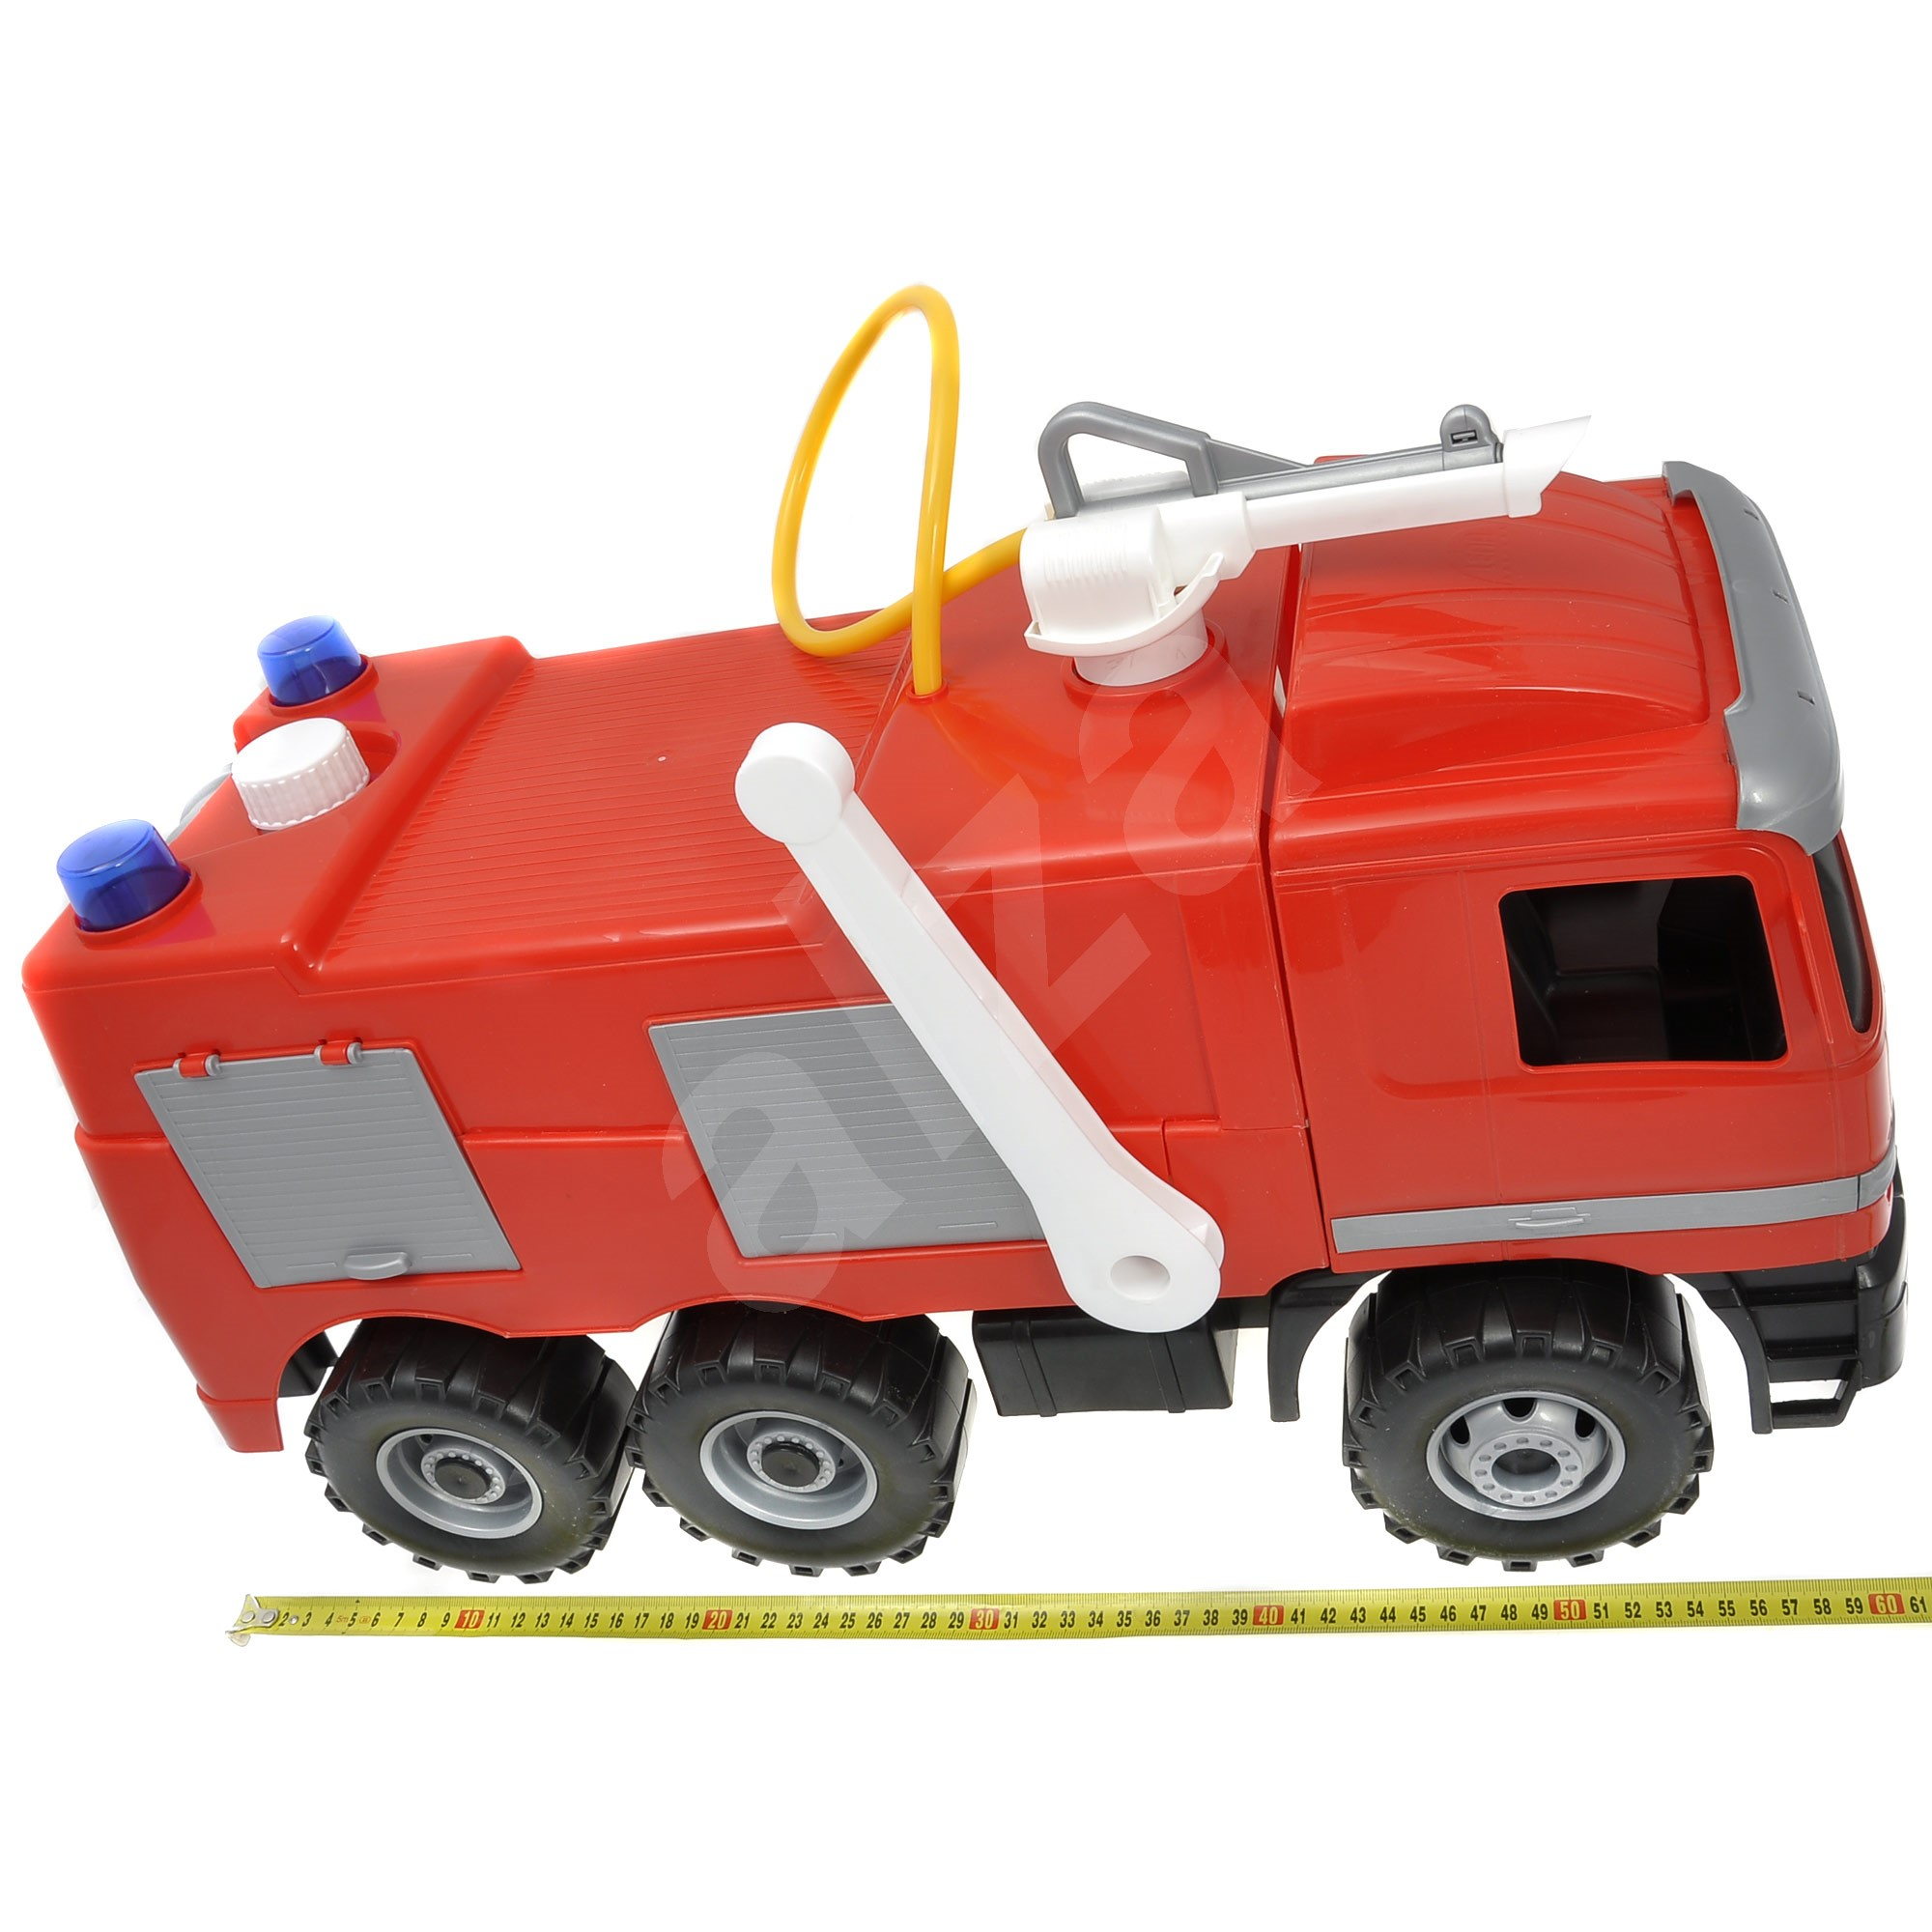 Lena mercedes benz fire truck in a box toy vehicle for Mercedes benz truck toys